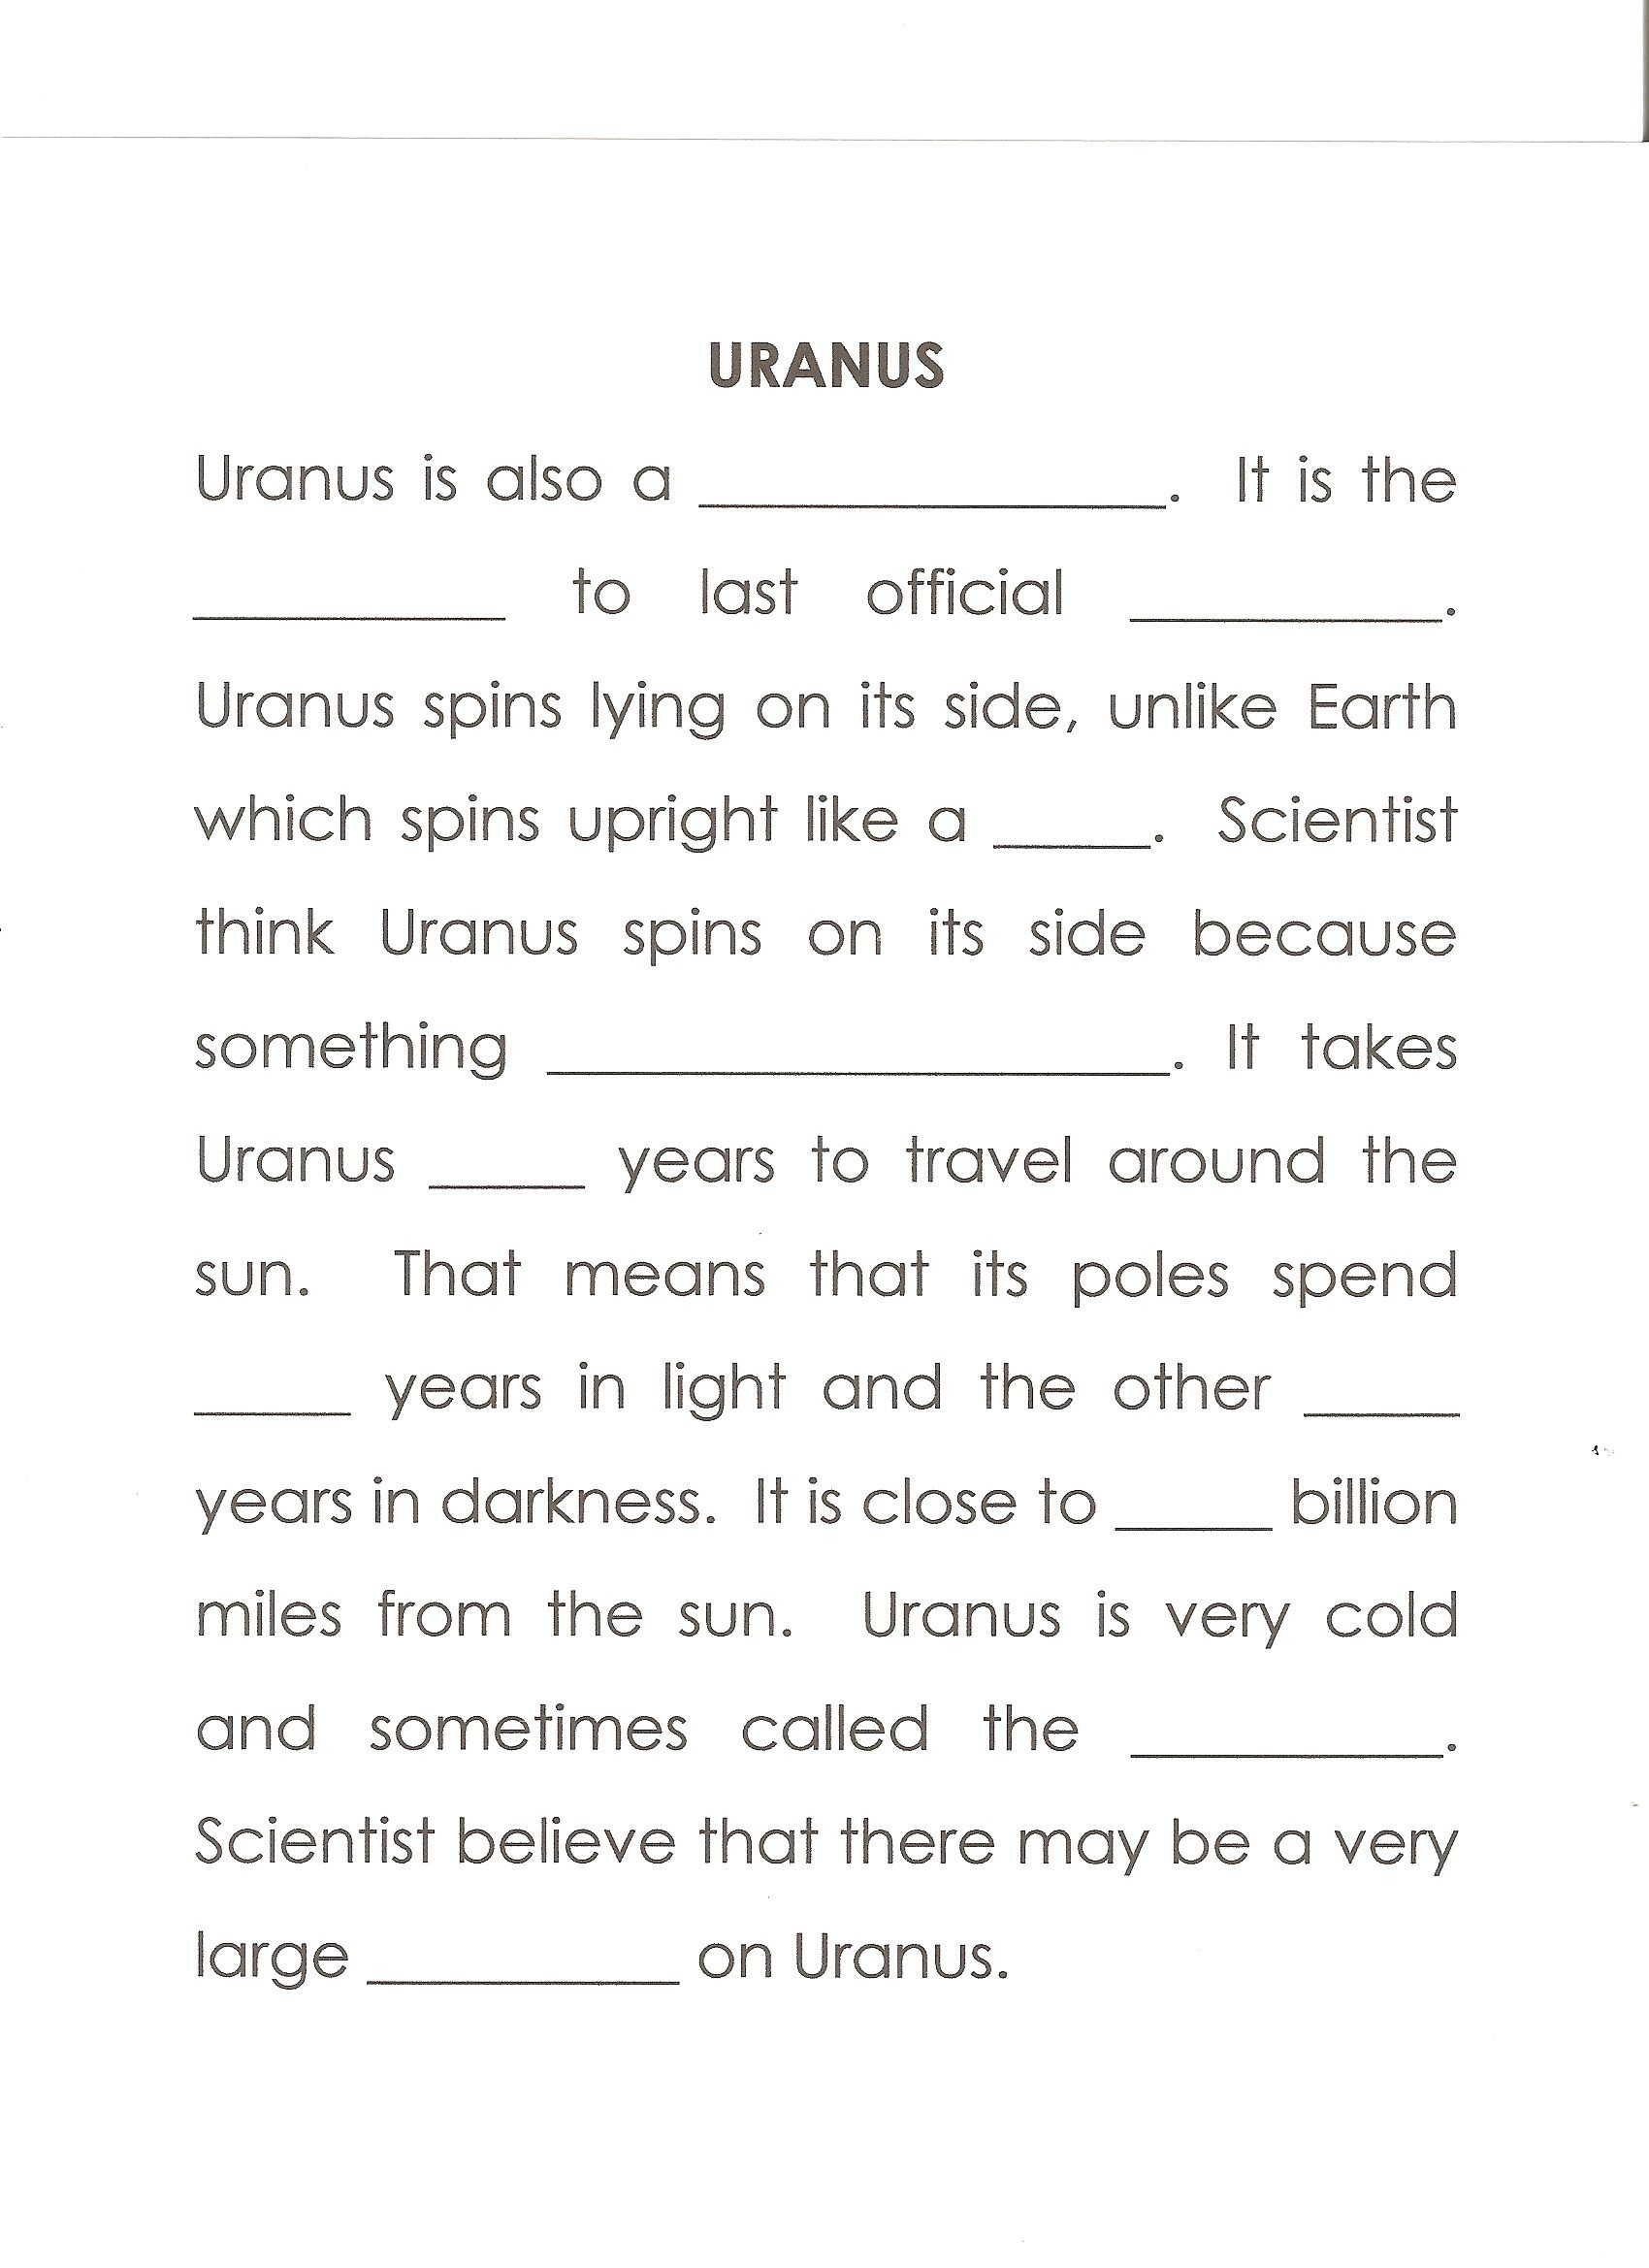 uranus worksheet answers gas giant second planet top crashed into it 84 42 42. Black Bedroom Furniture Sets. Home Design Ideas